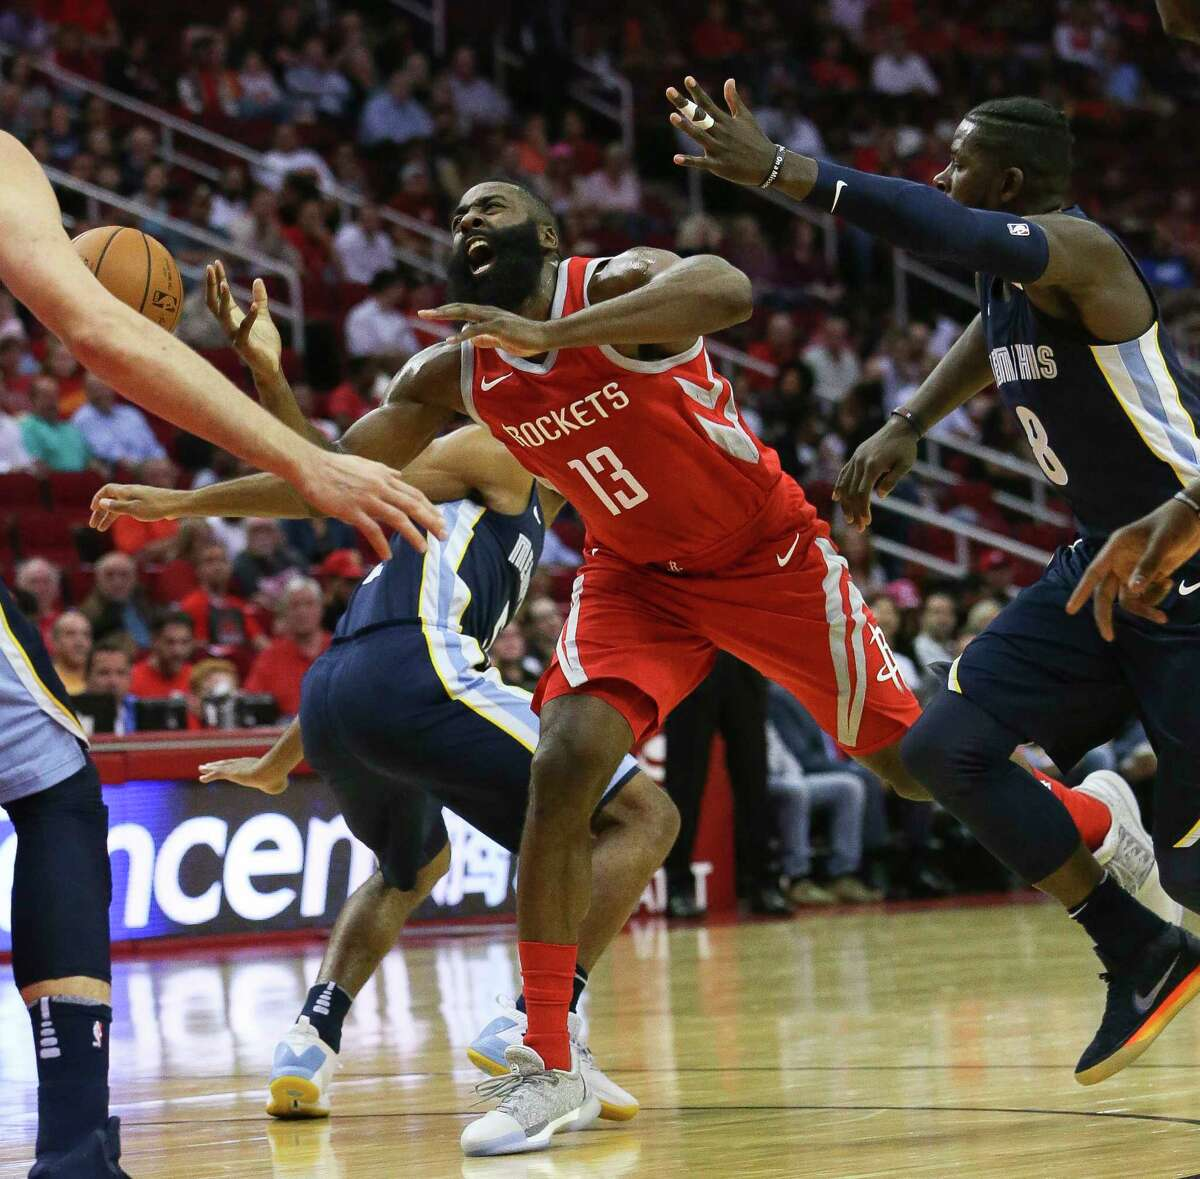 Houston Rockets guard James Harden (13) reacts to being fauled by Memphis Grizzlies forward James Ennis III (8) and loses the ball during the first quarter of the NBA game at Toyota Center Monday, Oct. 23, 2017, in Houston. ( Yi-Chin Lee / Houston Chronicle )